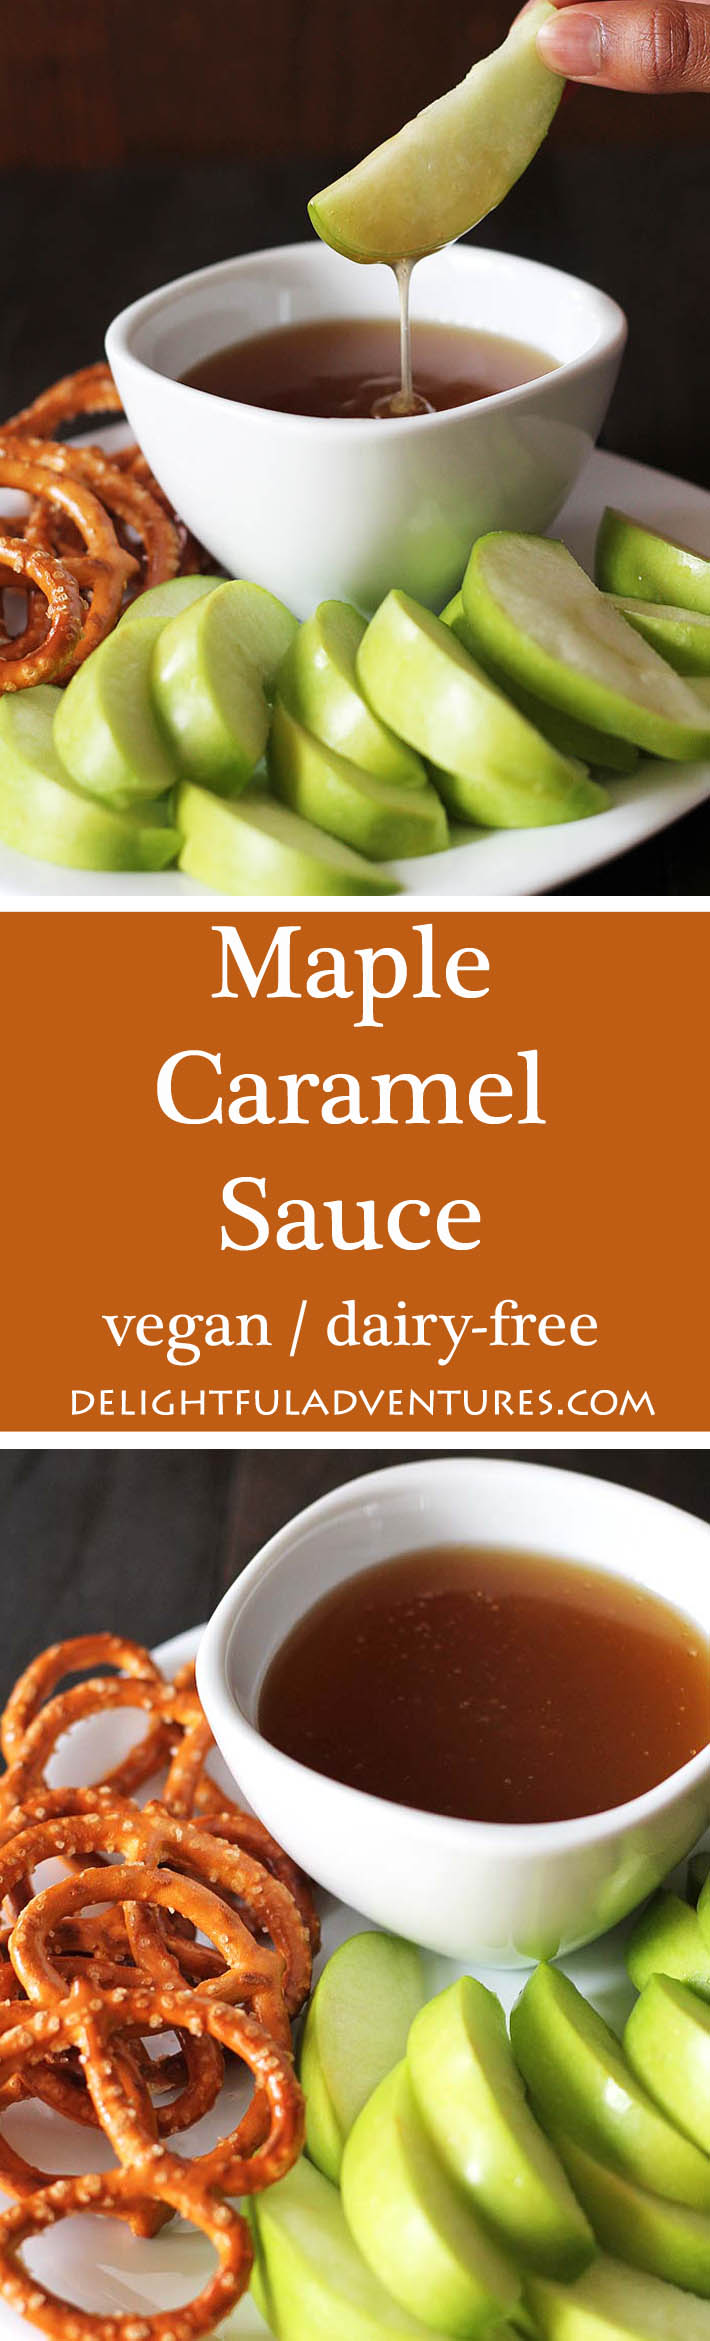 A quick, easy, and decadent maple caramel sauce that you'll want to put on everything from ice cream, sticky toffee pudding, pancakes, waffles and more!